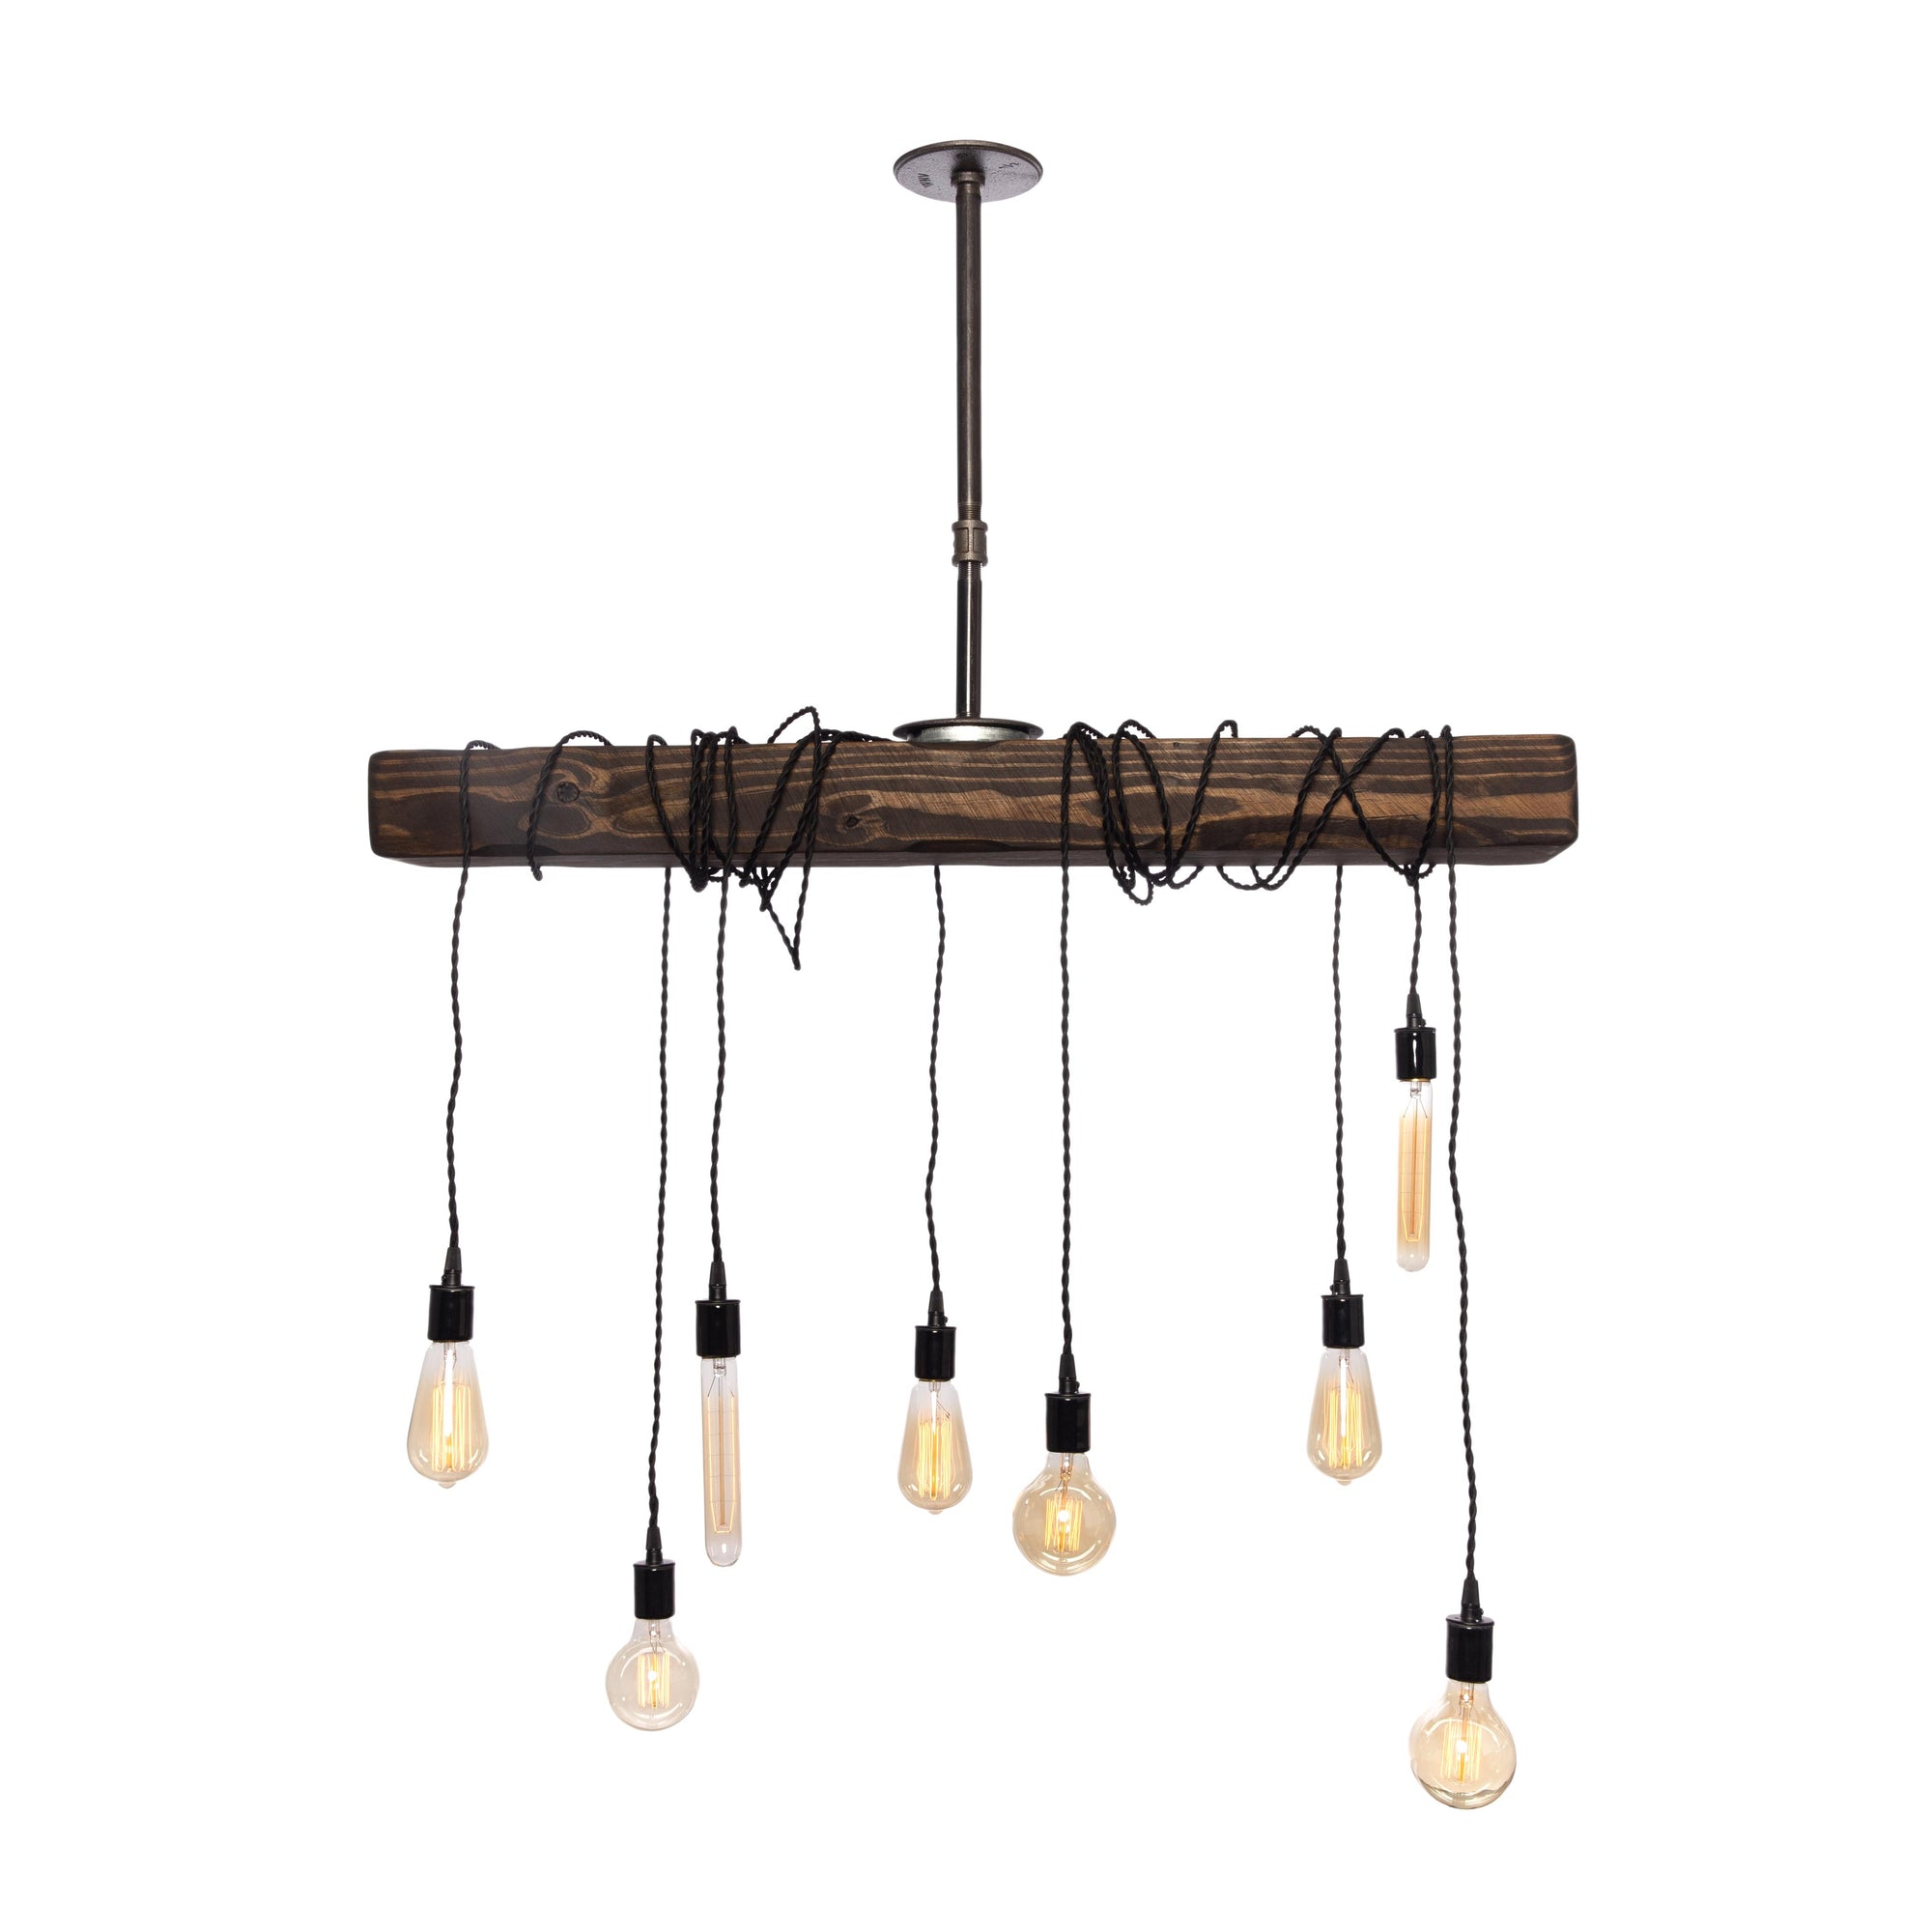 "Pendant Wood Beam Chandelier | 46"" beam"